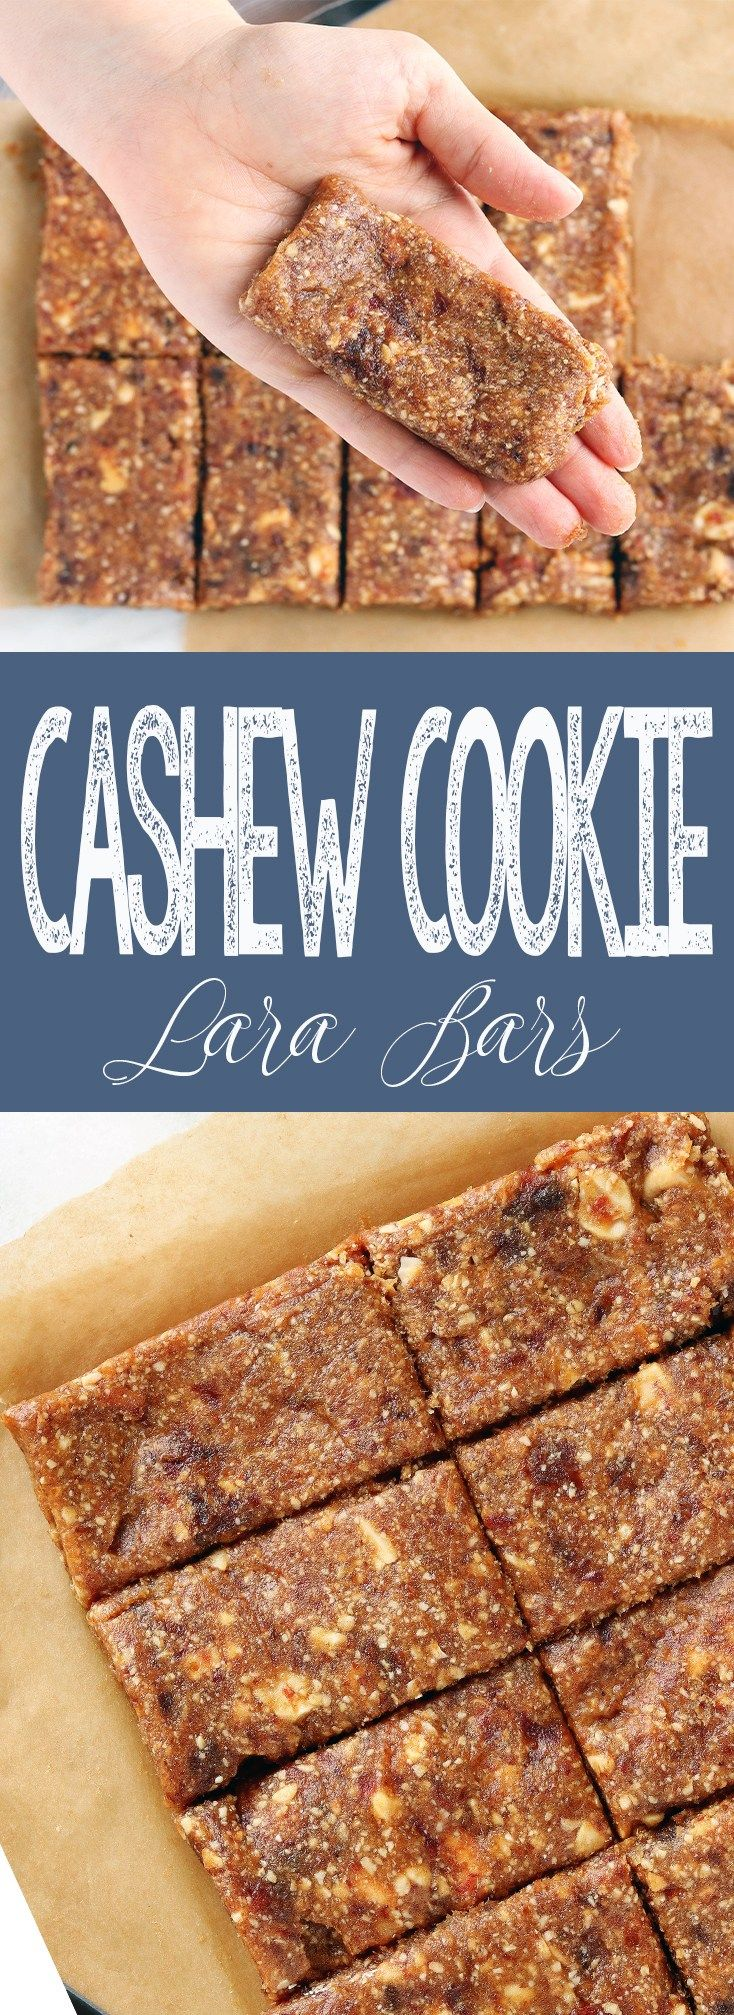 """A healthy, easy recipe for 3-Ingredient Cashew Cookie """"Lara"""" Bars made with cashews, Medjool dates and sea salt. The perfect grab-n' go snack, these bars are vegan, gluten-free and Whole30 compliant."""